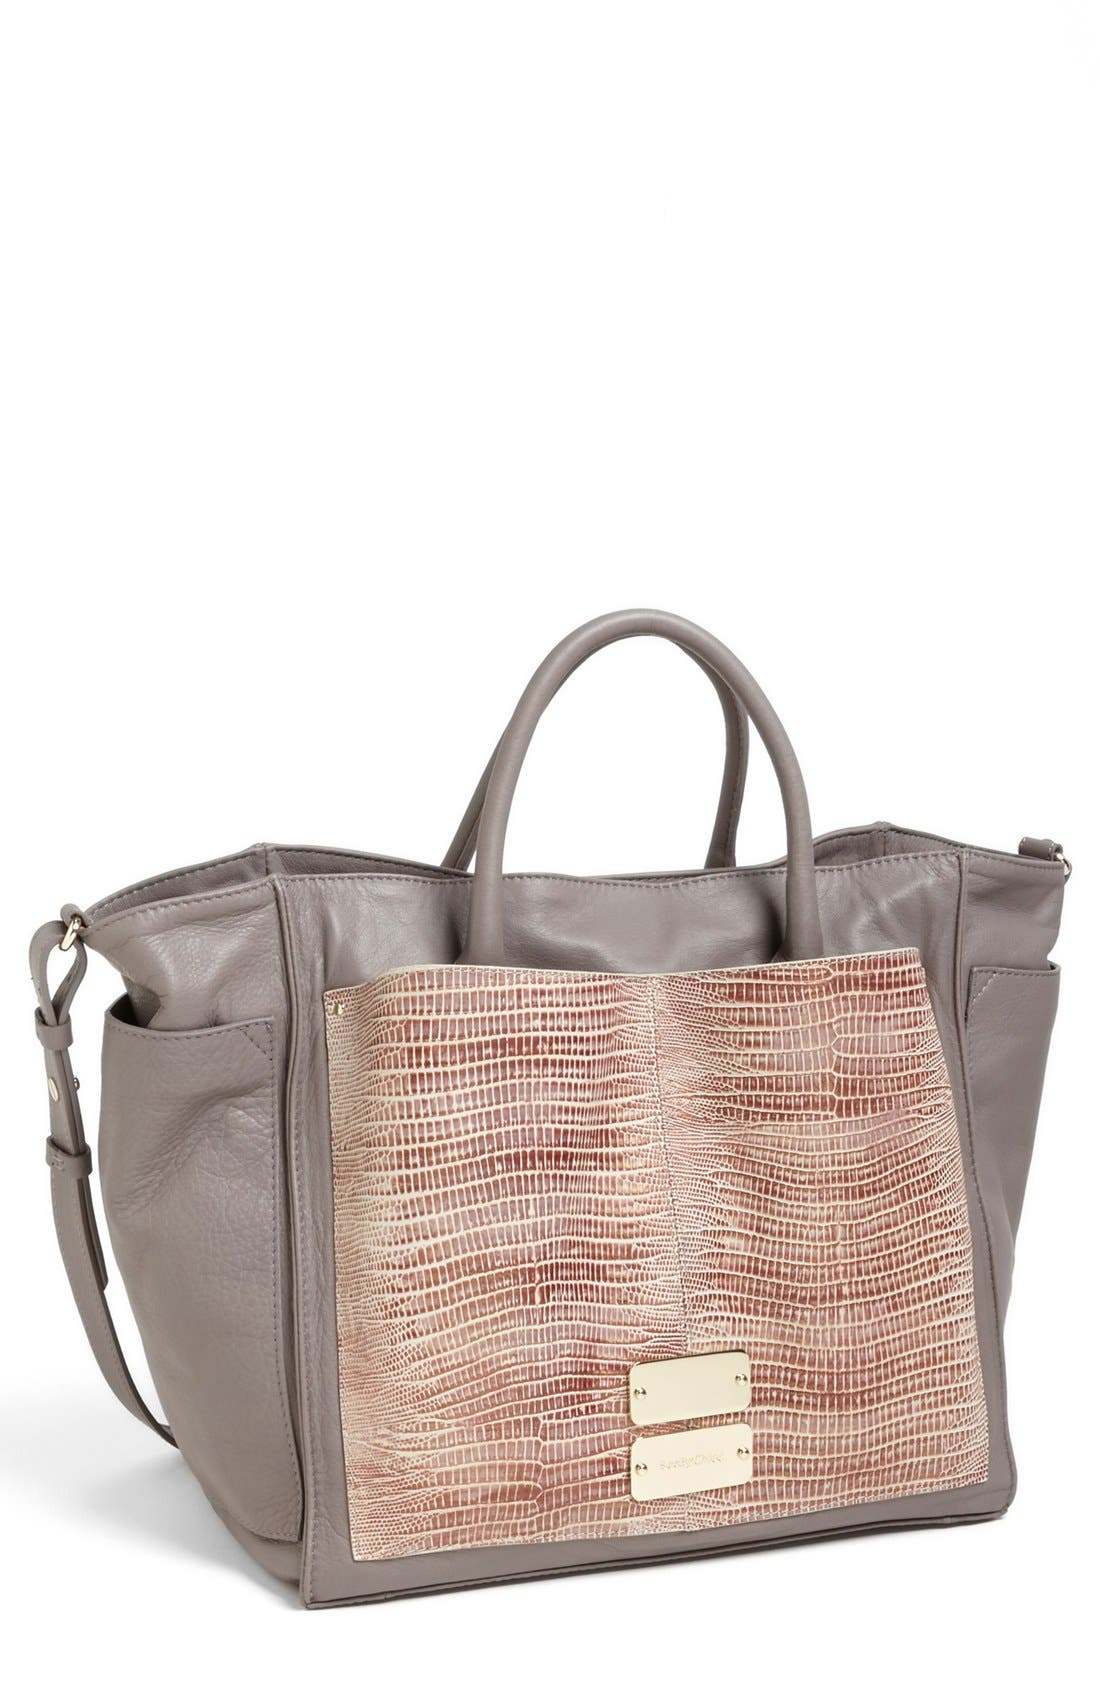 Main Image - See by Chloé 'Nellie' Tote